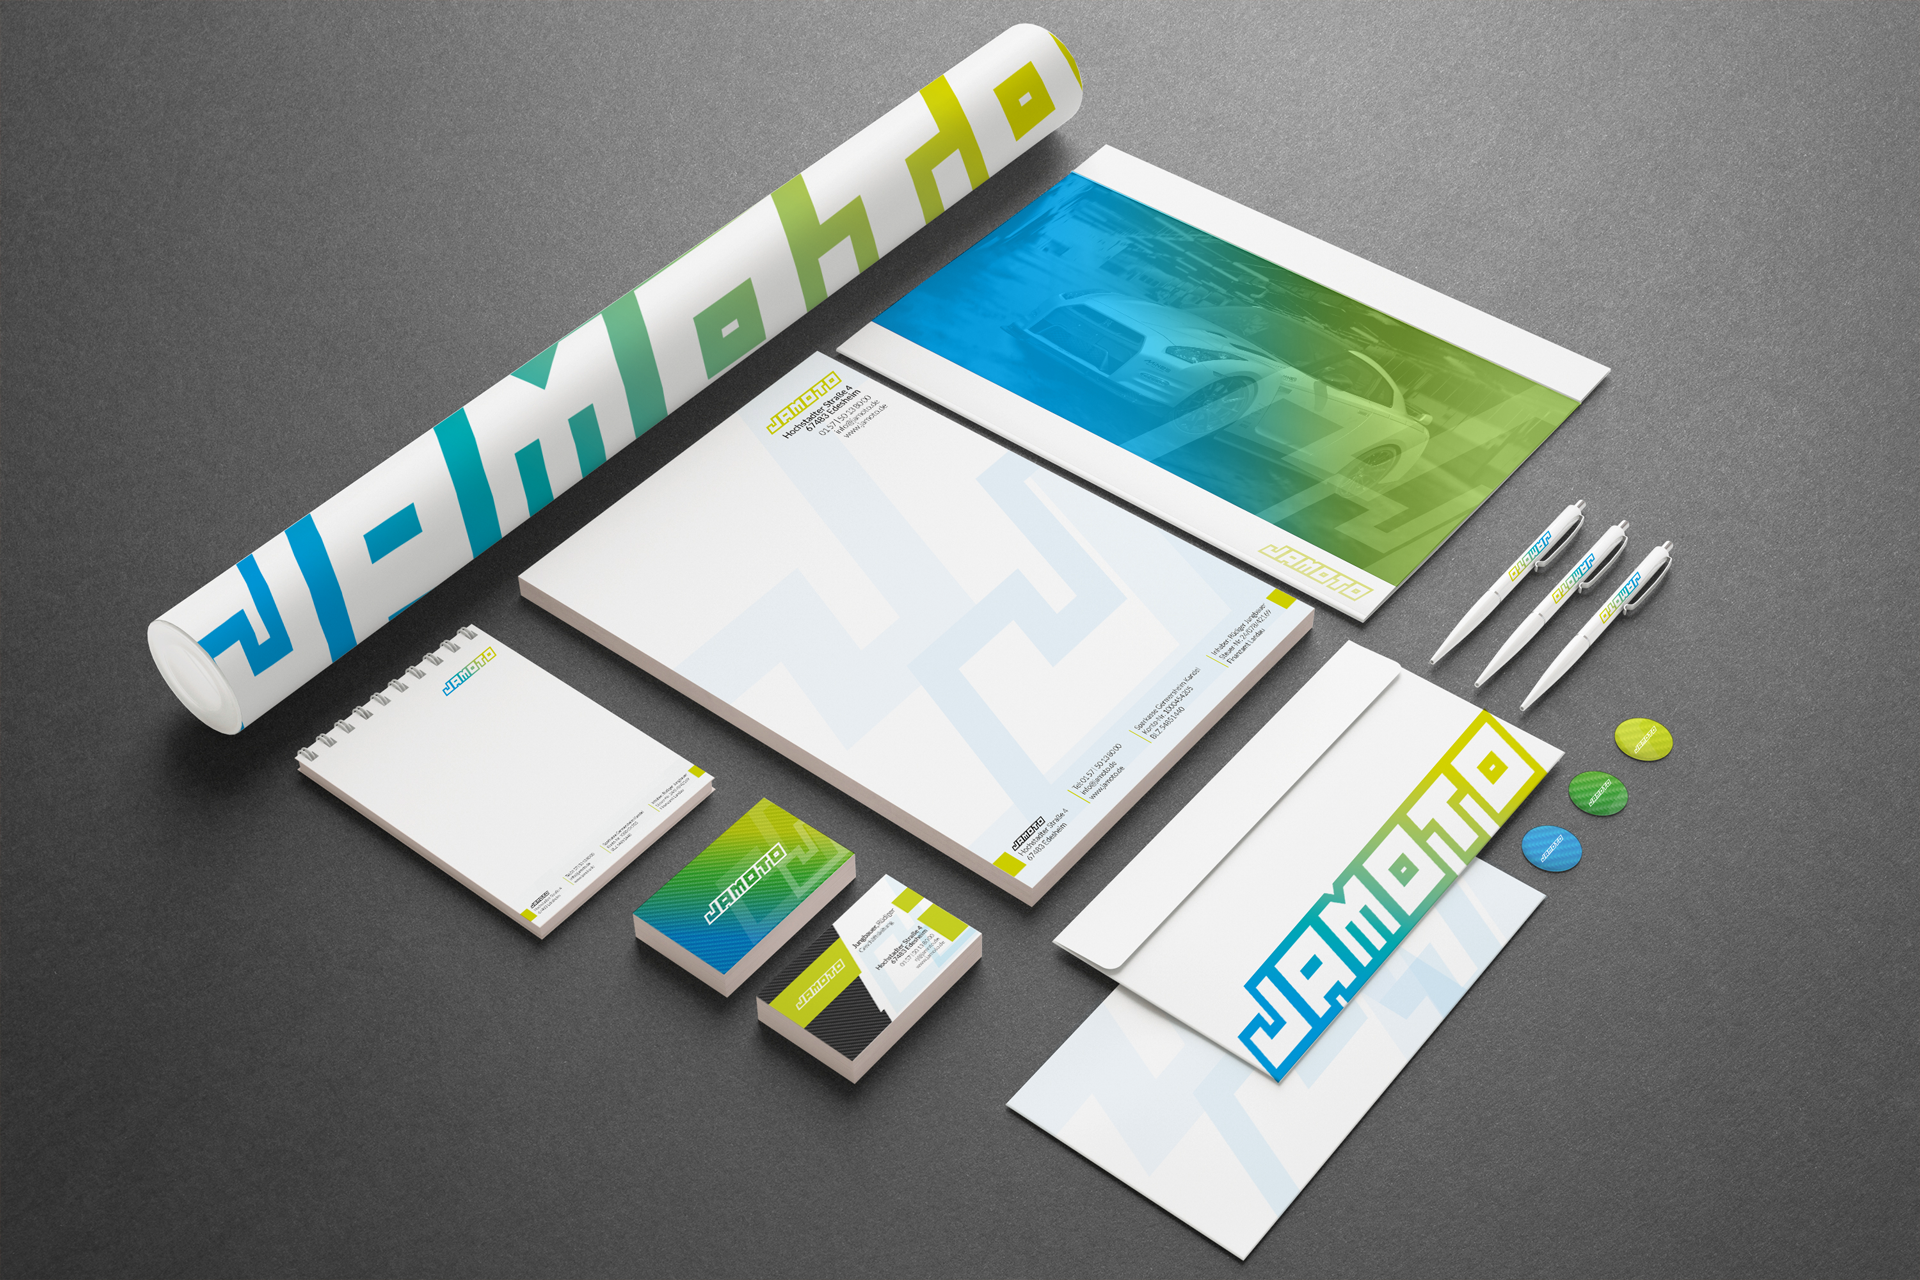 Corporate Design KfZ - mehr auf https://www.4uture.com/portfolio/corporate-design-kfz/